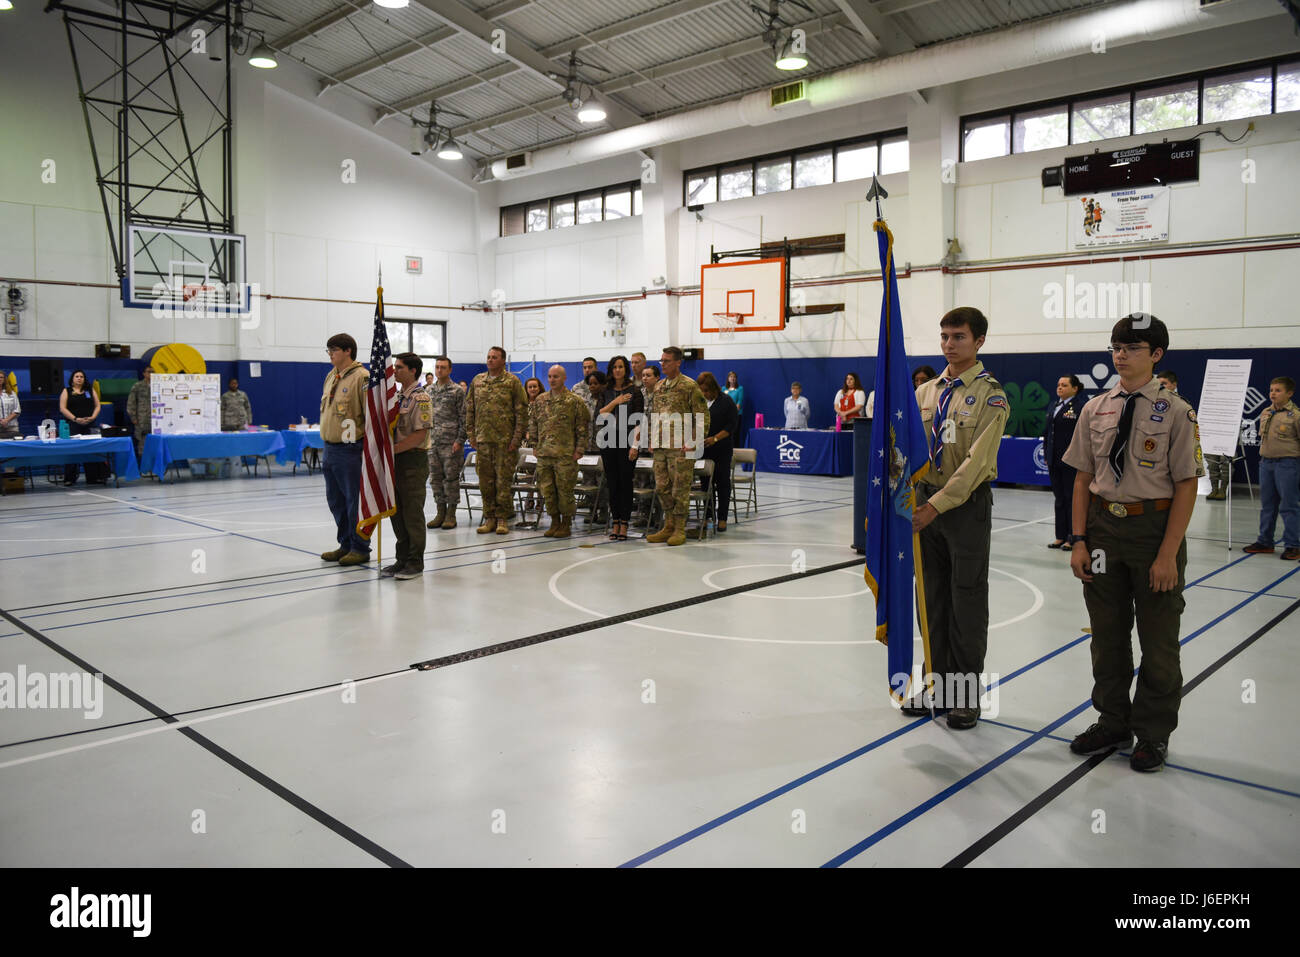 Boy Scouts of America Troop 509 present the colors during